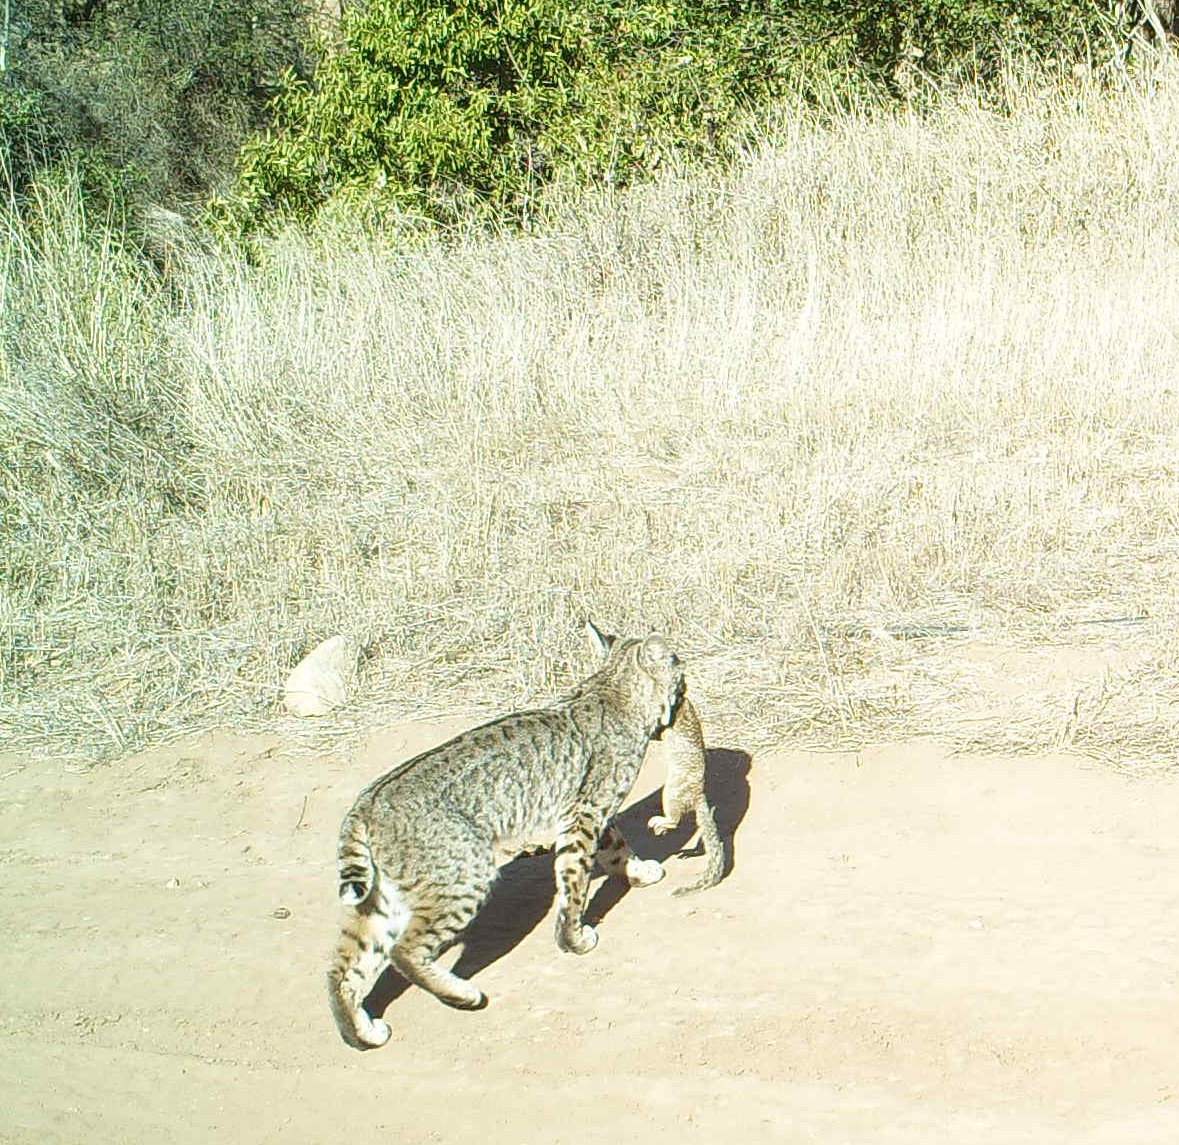 Apex predators such as the bobcats help control the ground squirrel population.